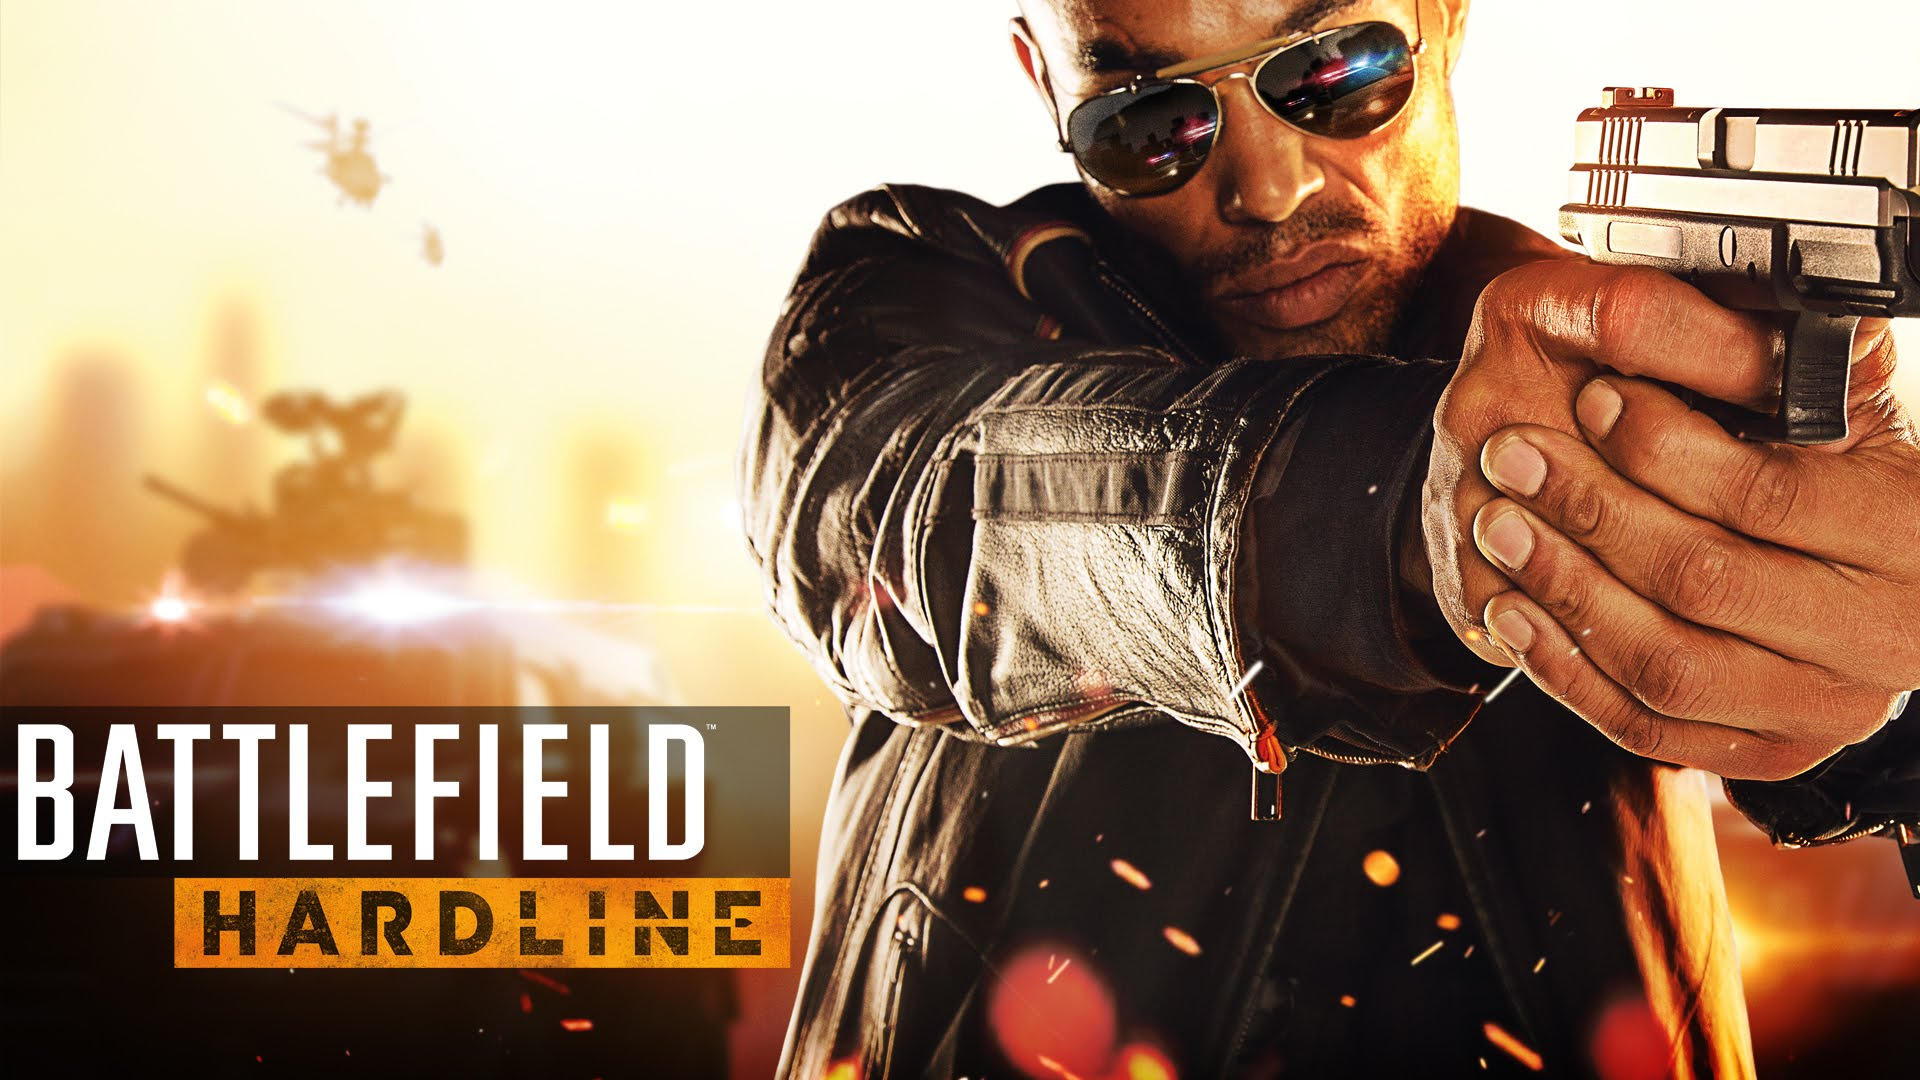 maxresdefault 8 EA Offering Free DLC For Battlefield Games